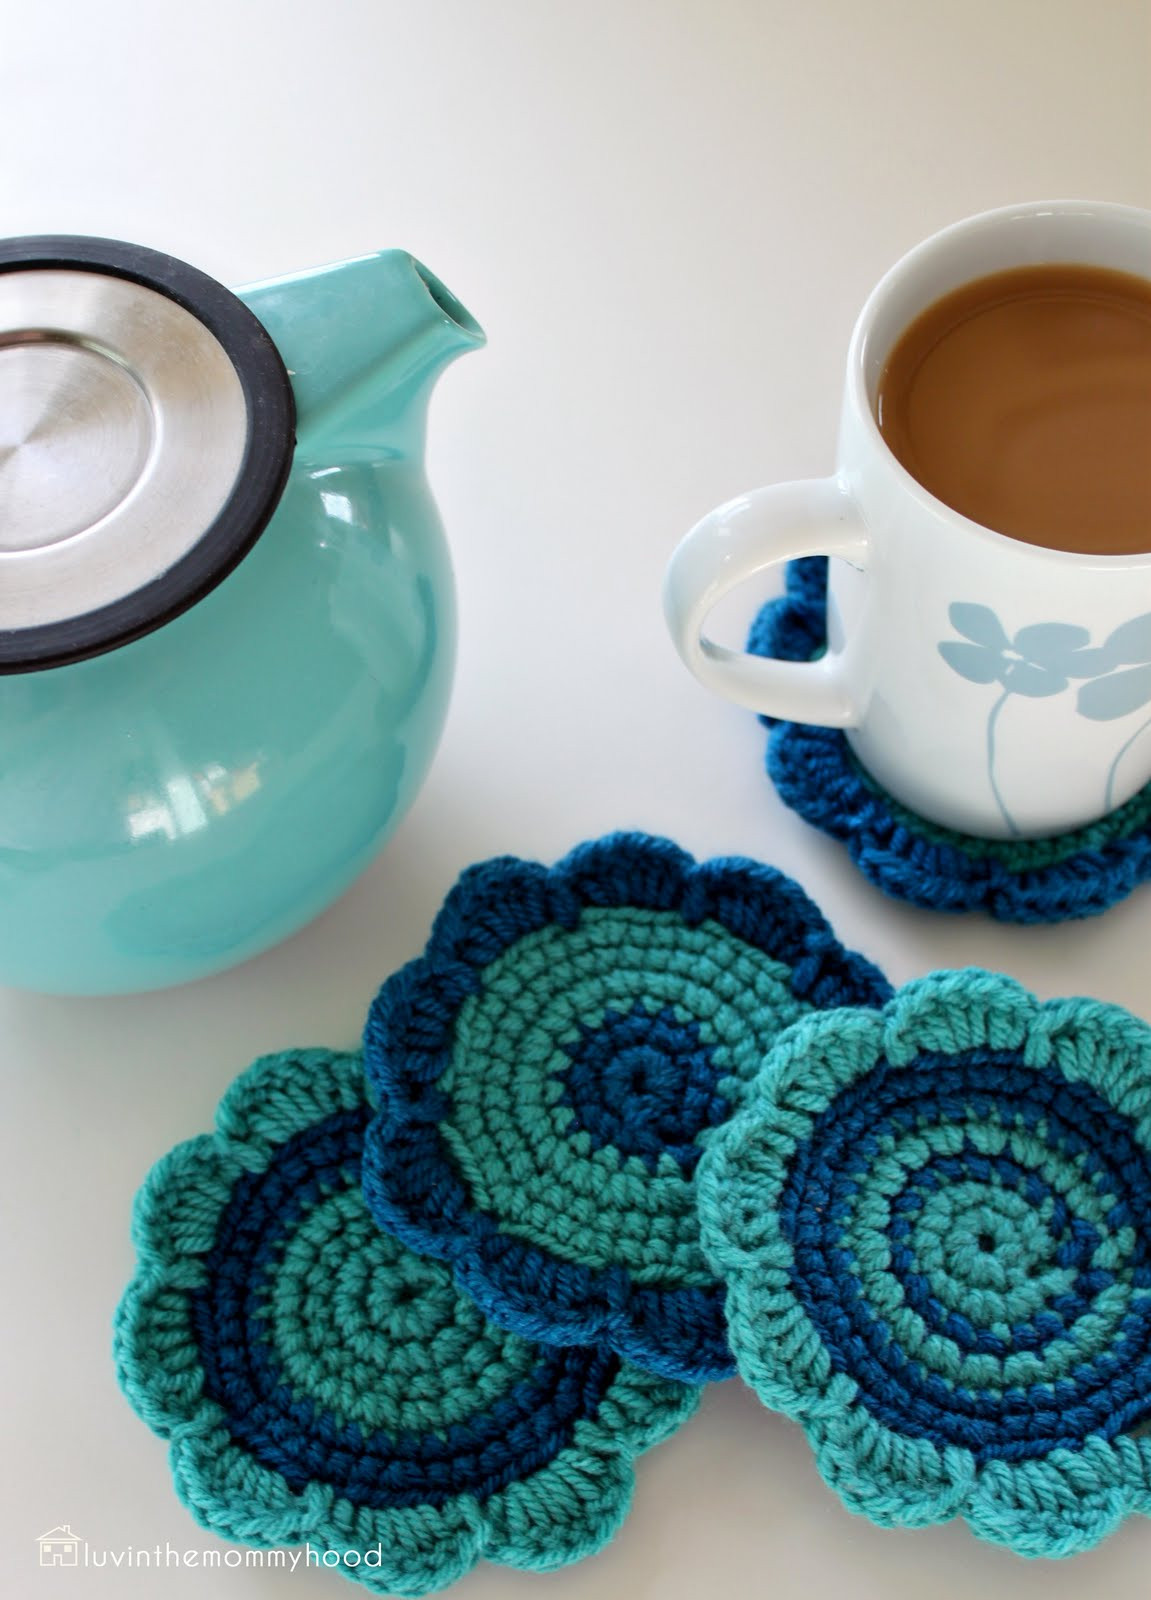 Crochet Tutorial Unique Versus Jardain Crochet Coaster Tutorial with Guest Of Wonderful 48 Ideas Crochet Tutorial